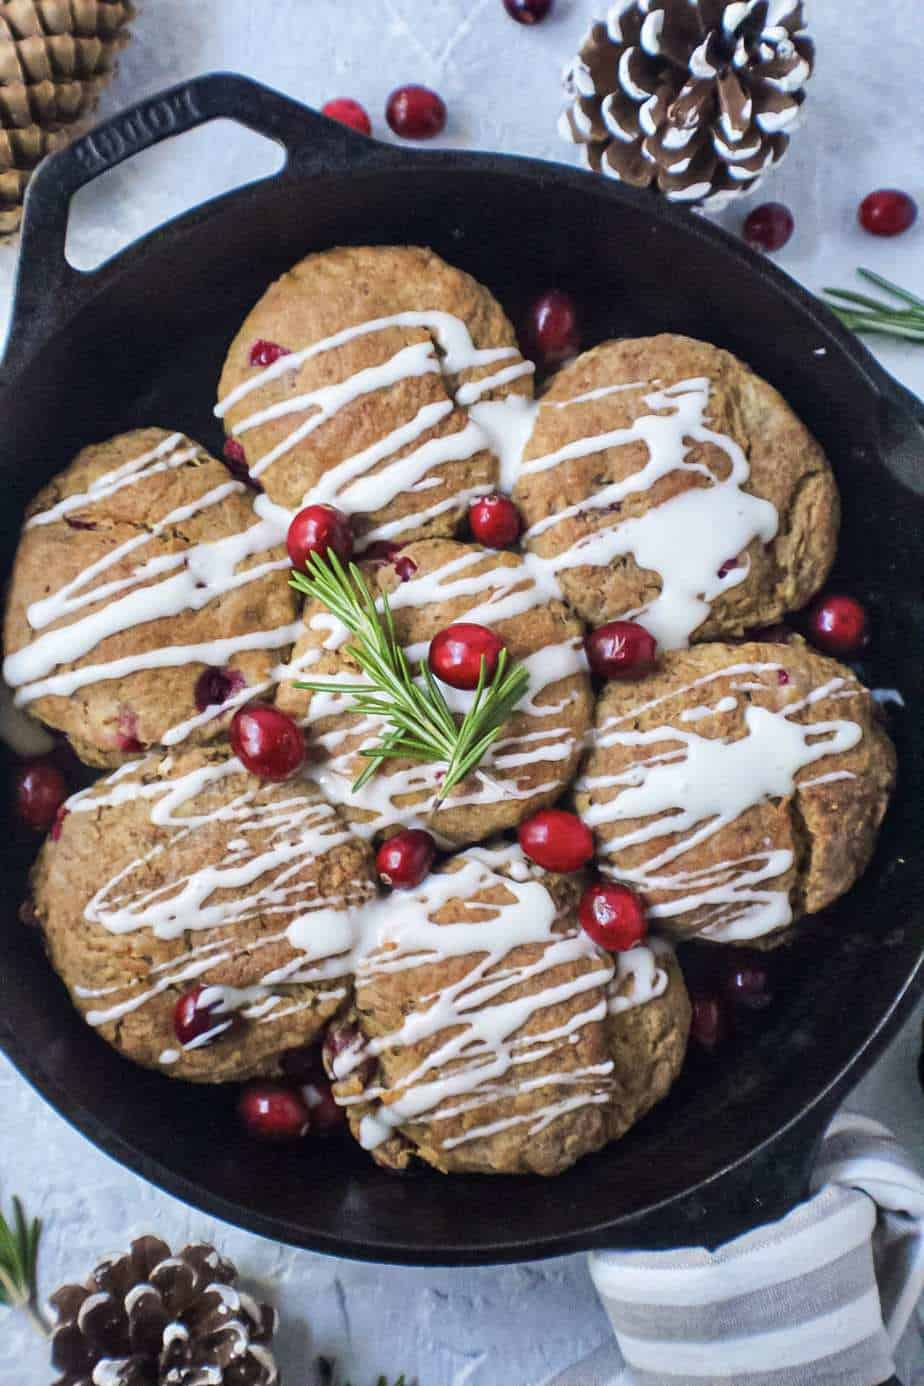 cranberry buttermilk biscuits topped with powdered sugar glaze in cast iron skillet garnished with fresh cranberries